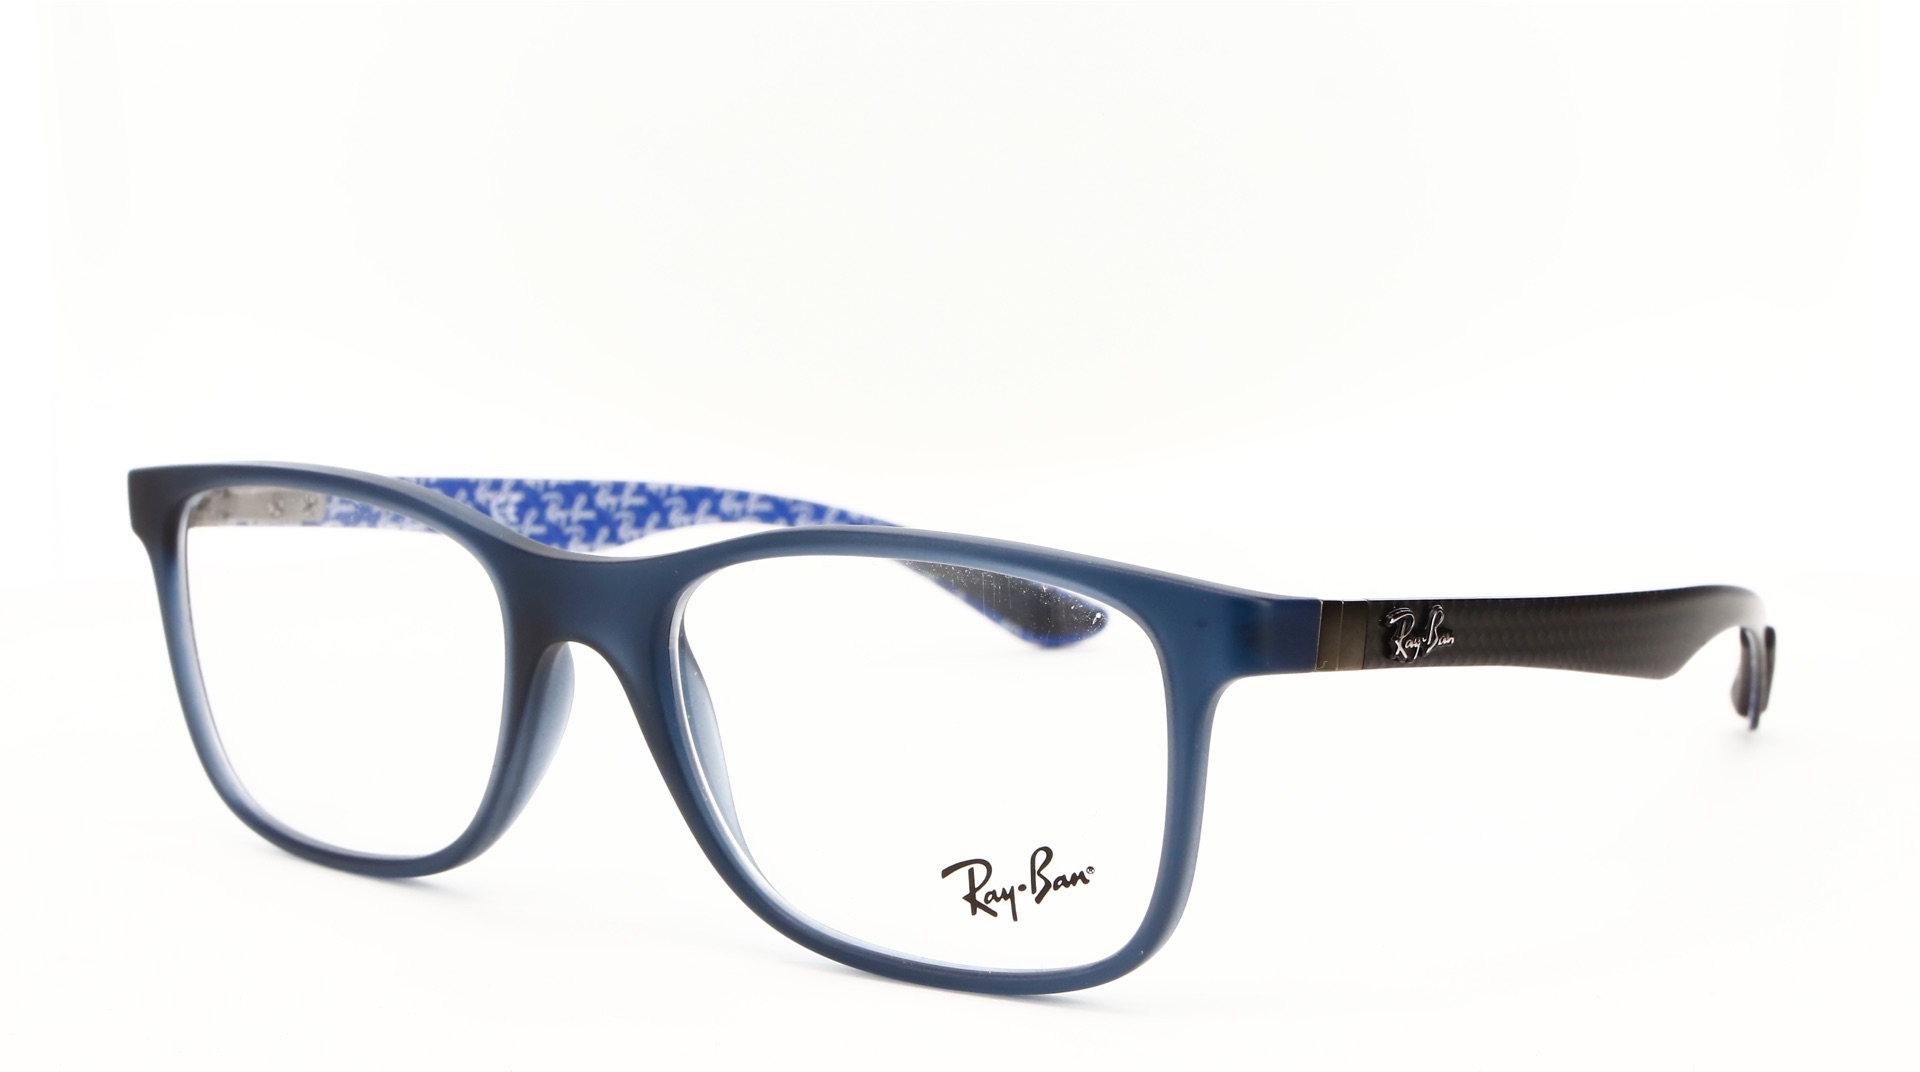 Ray-Ban - ref: 76383